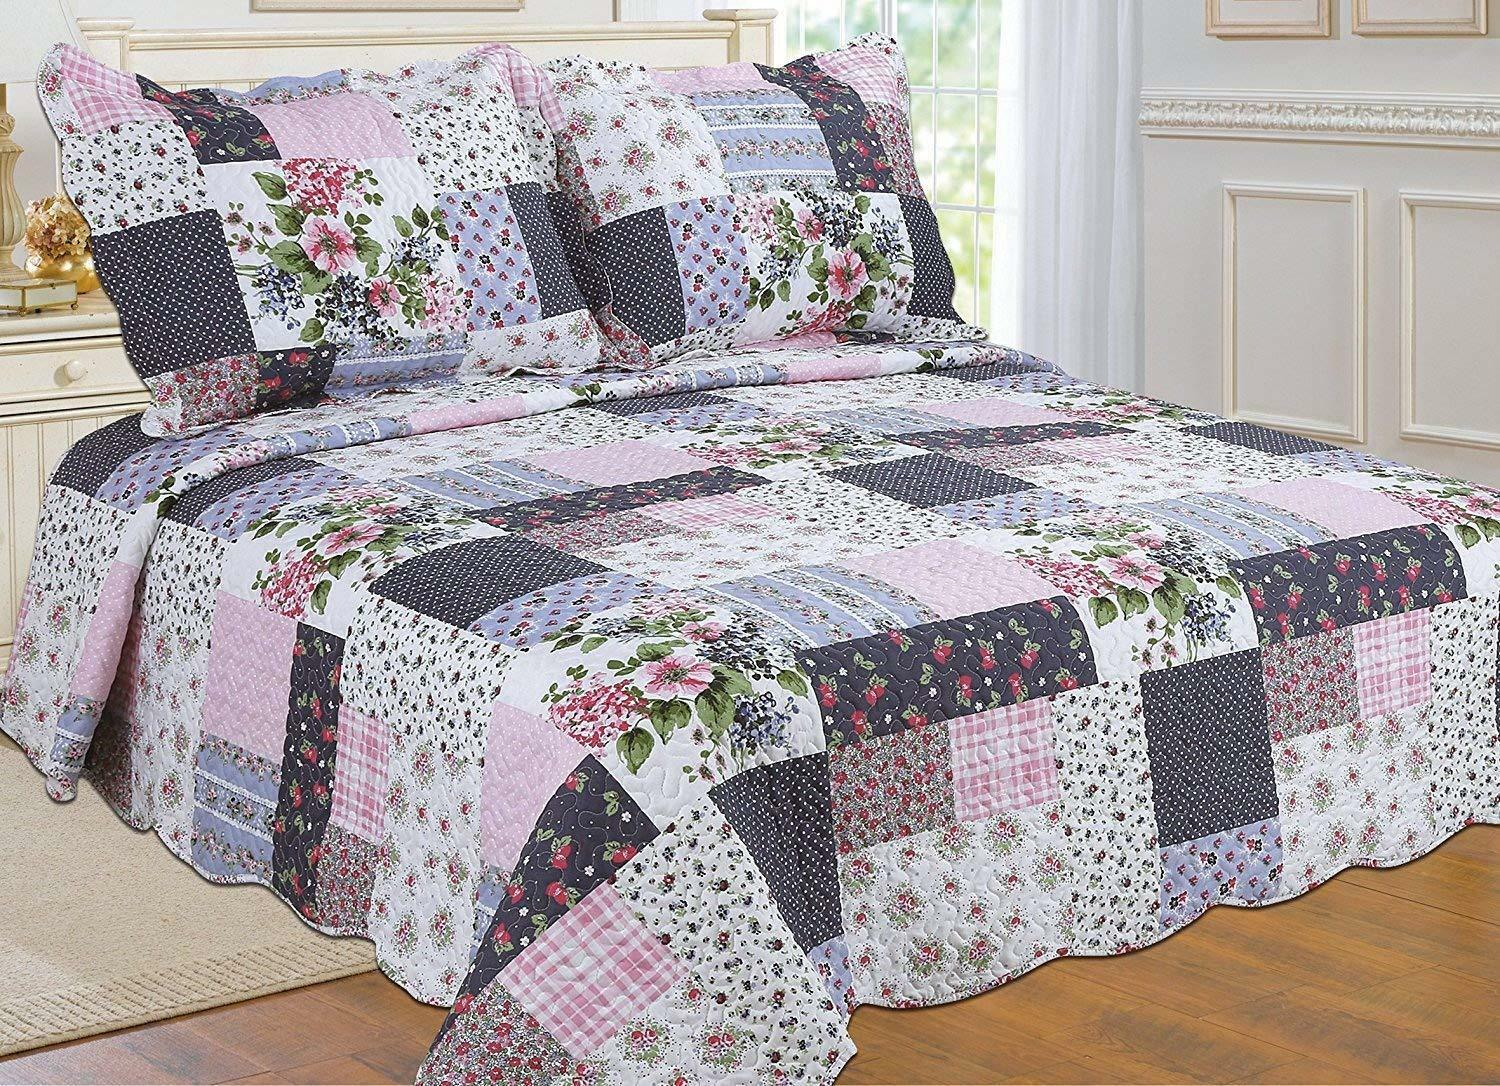 ALL FOR YOU Reversible Bedspread, Coverlet,Quilt *98* Flower